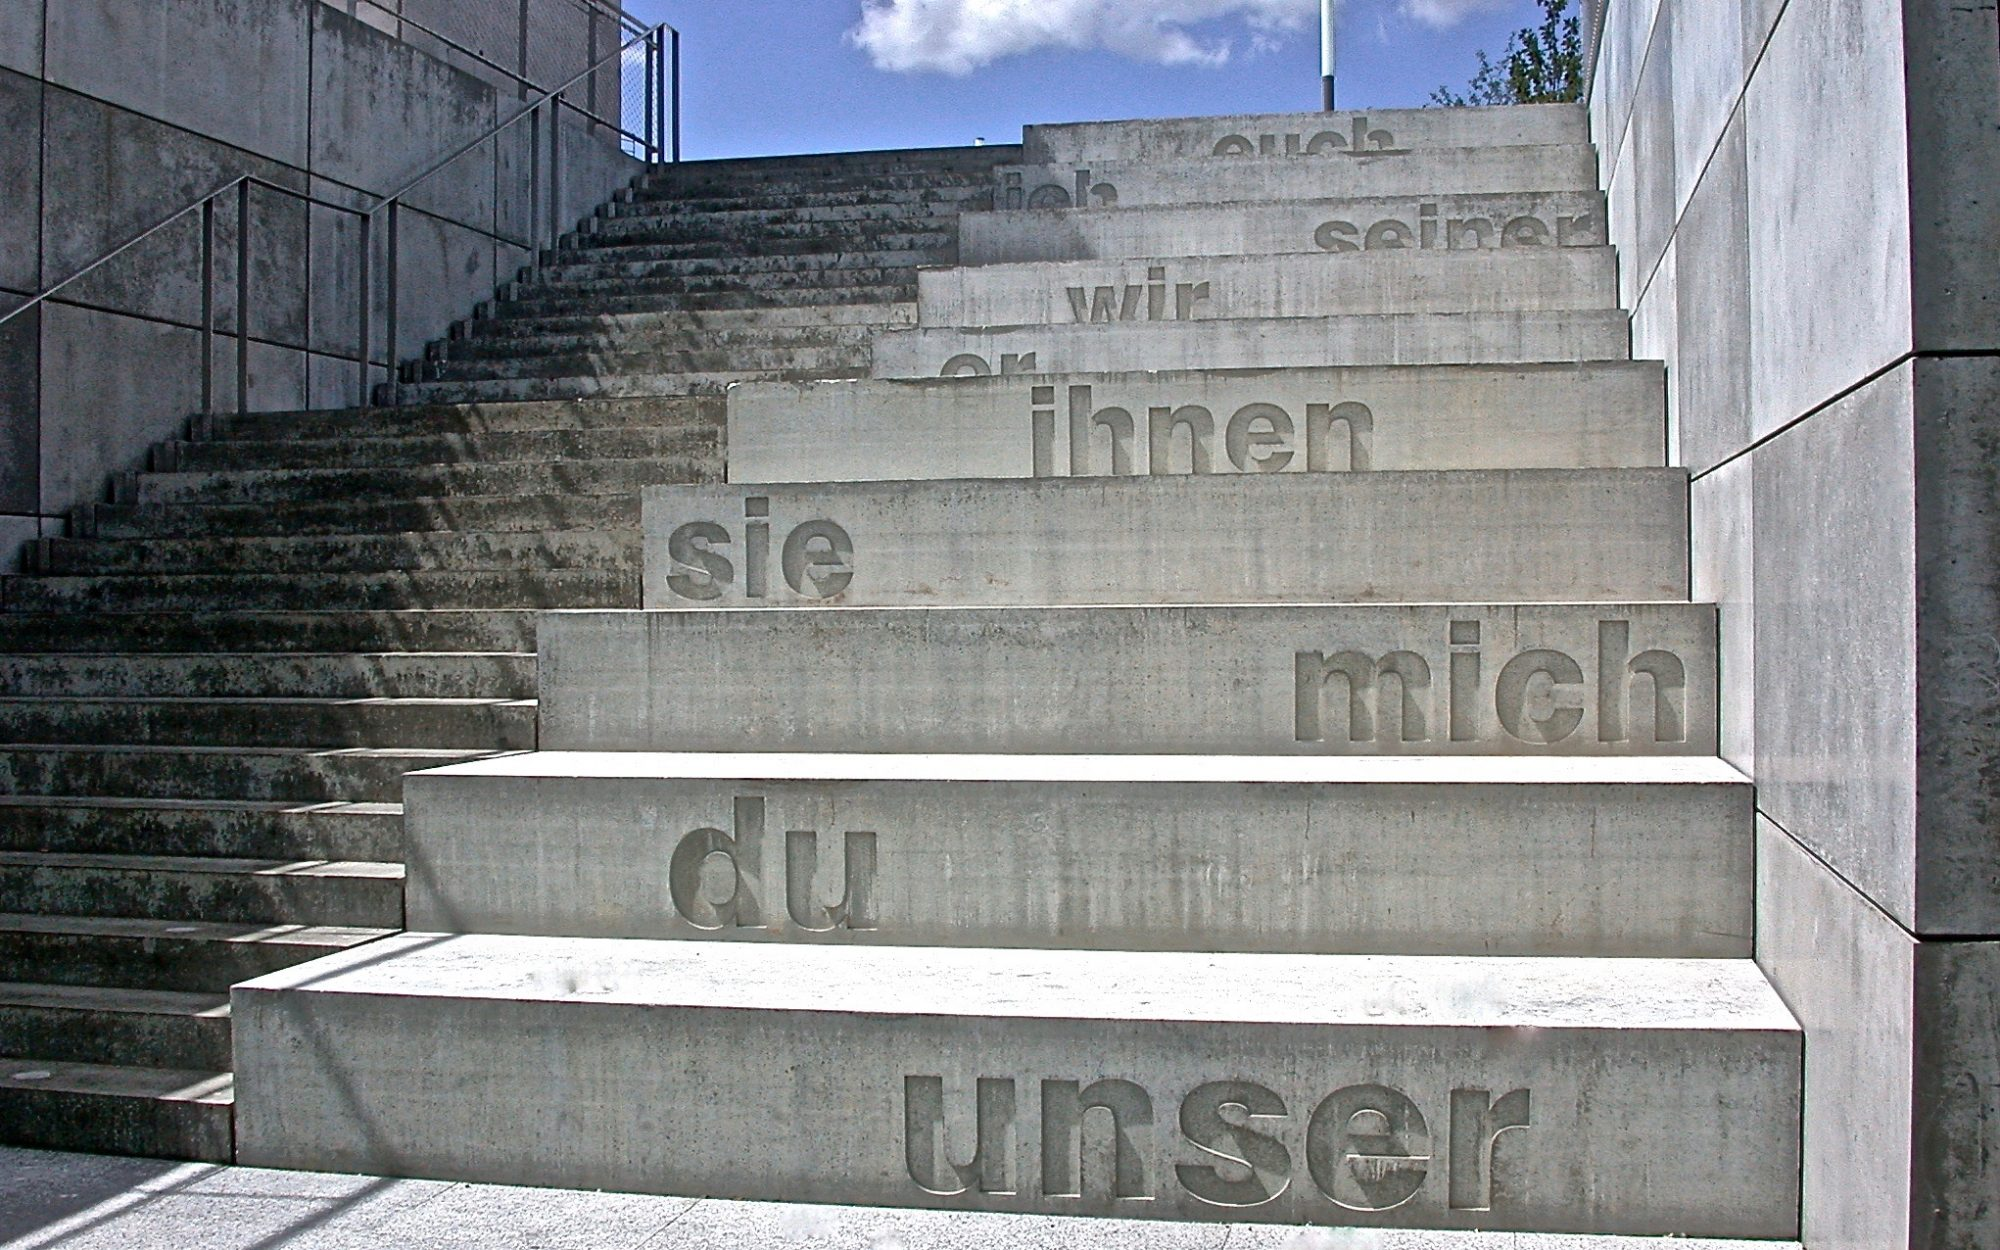 2004, Textintervention, Beton / concrete, Universität Tübingen / University of Tubingen